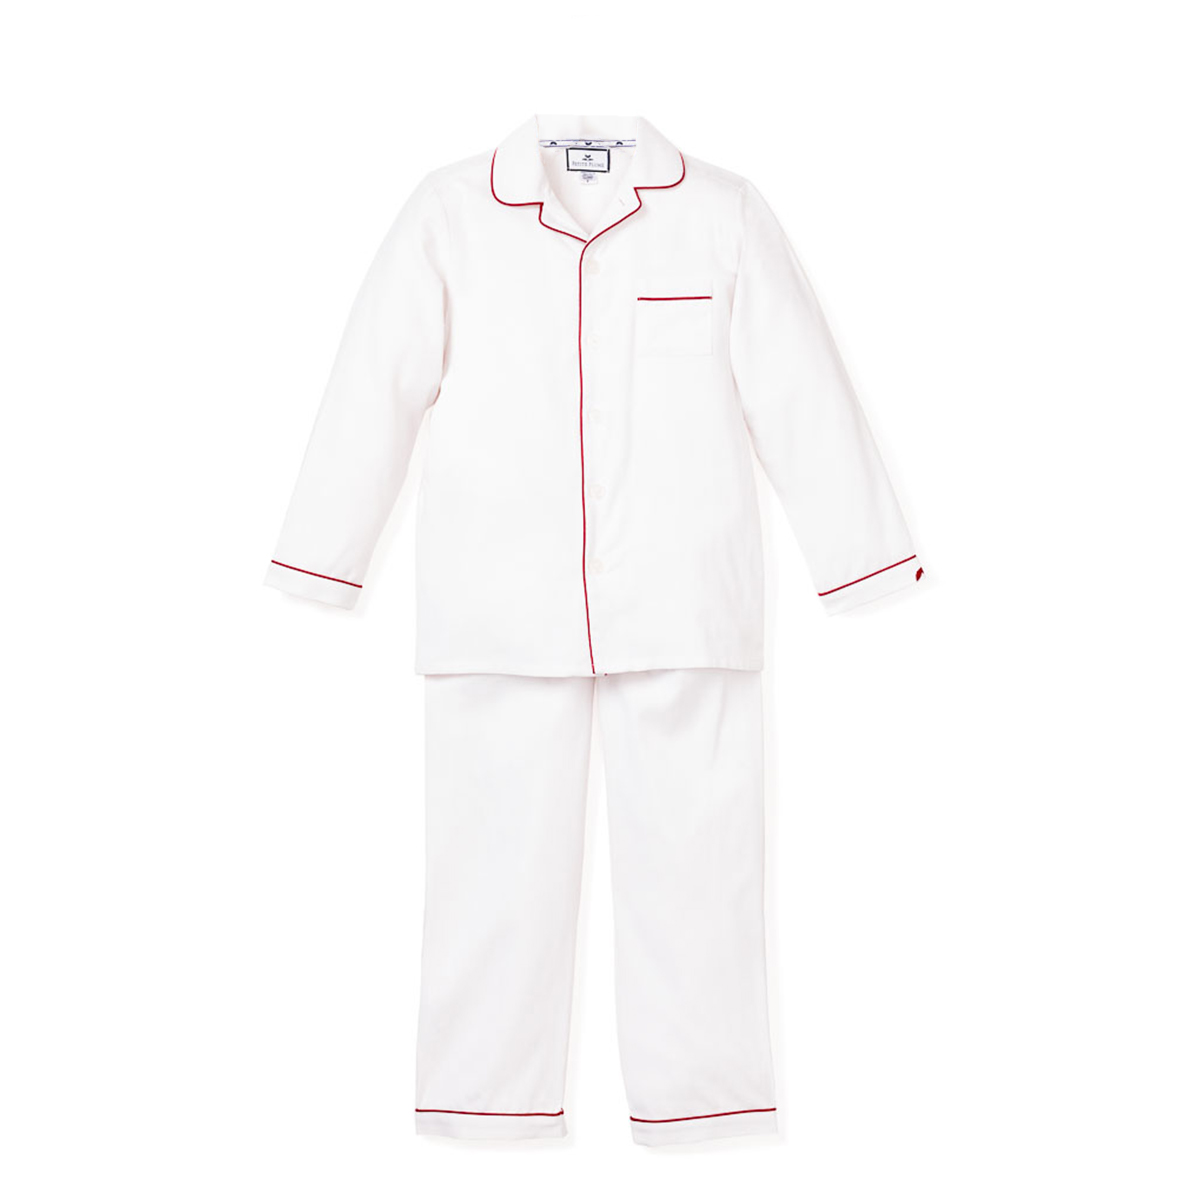 Petite Plume Classic White Pajamas with Red Piping